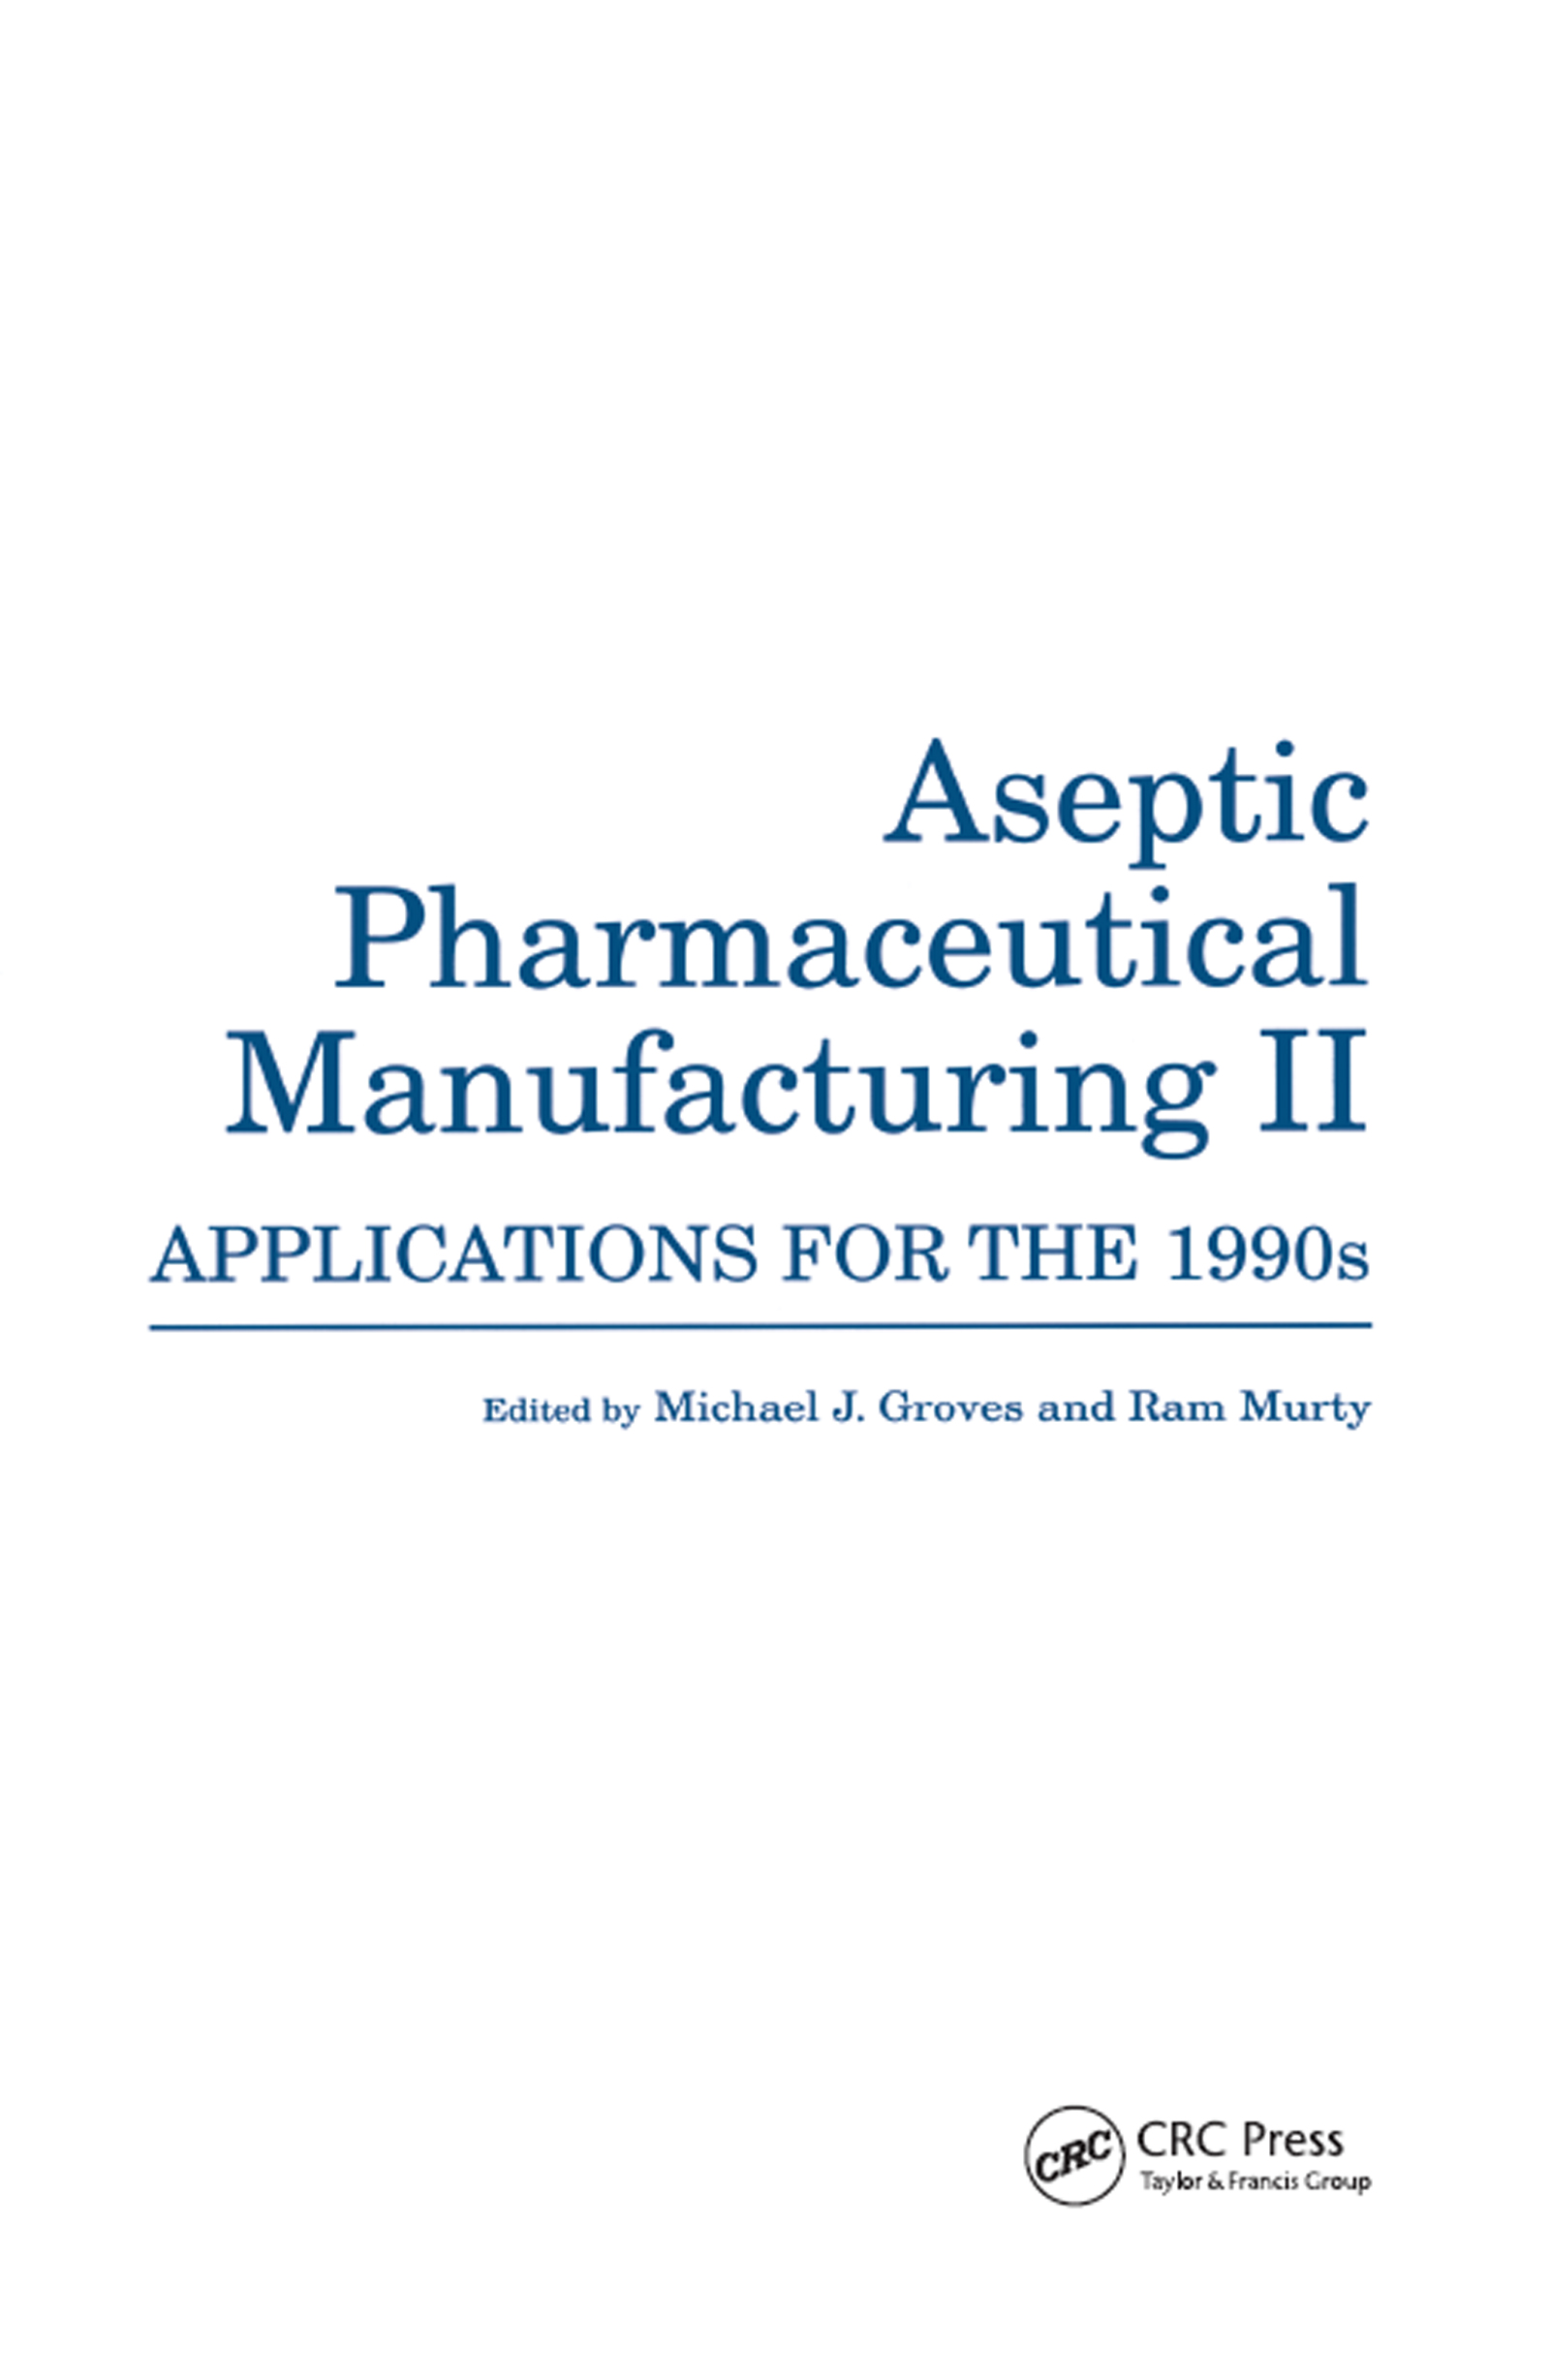 Controlled Environments in the Pharmaceutical and Medical Products Industry: A Global Review from Regulatory, Compendial, and Industrial Perspectives